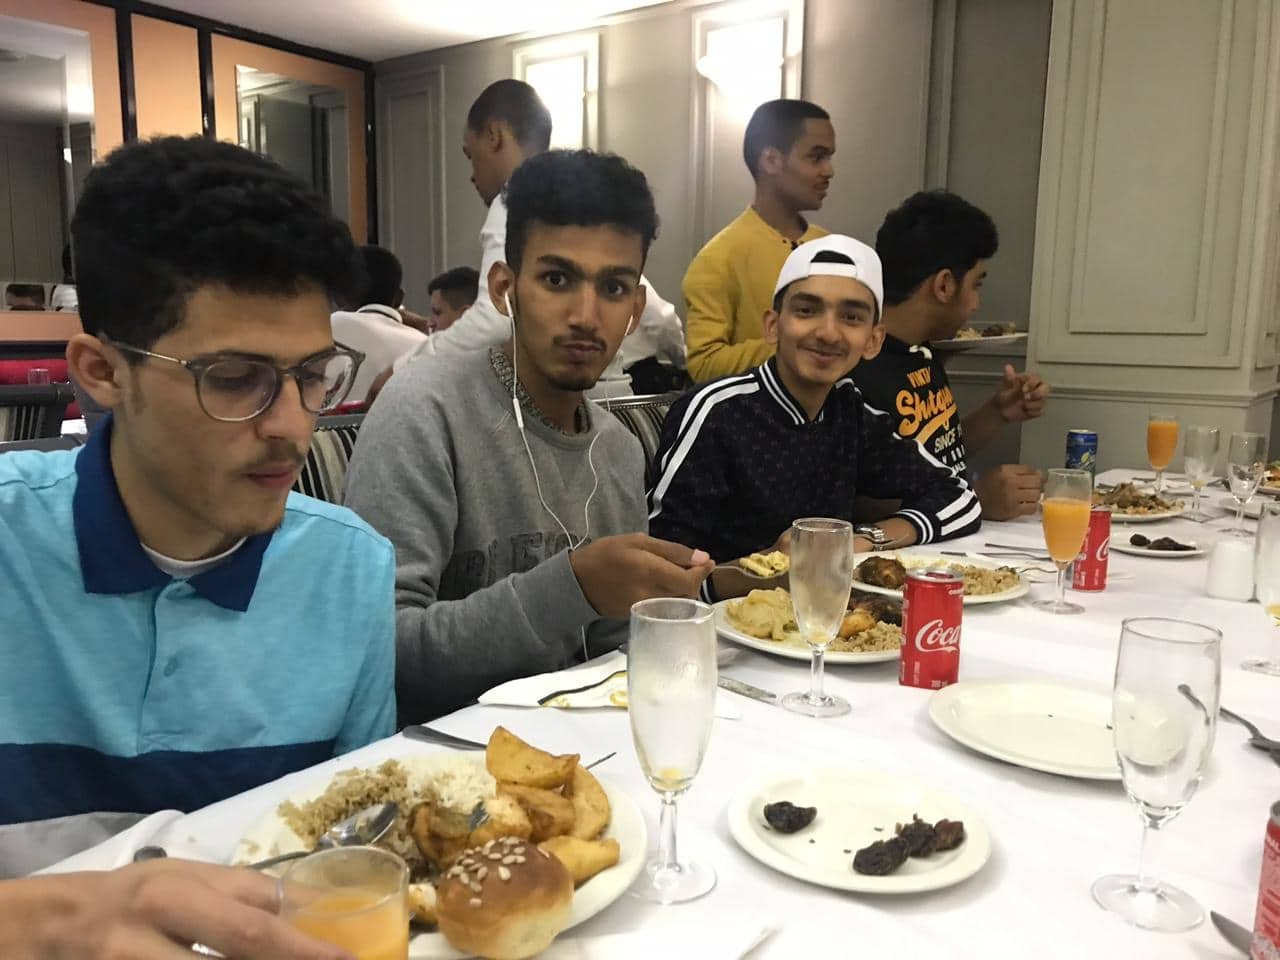 Students enjoying themselves at the Iftar dinner with EC English Cape Town